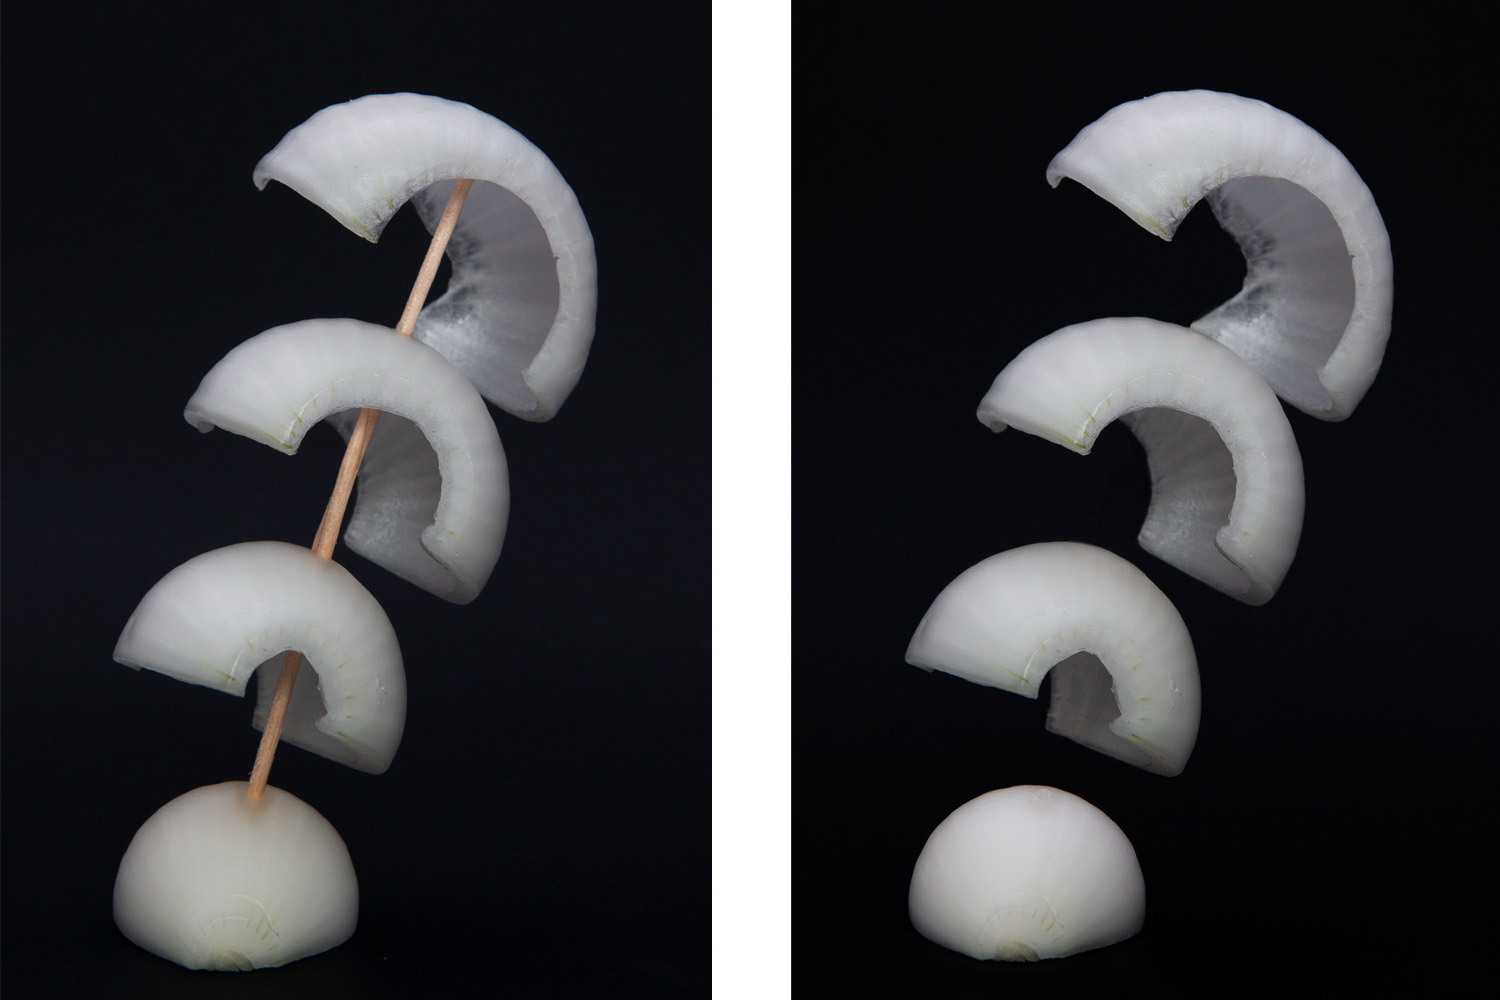 creating a levitation onion photo (before and after)